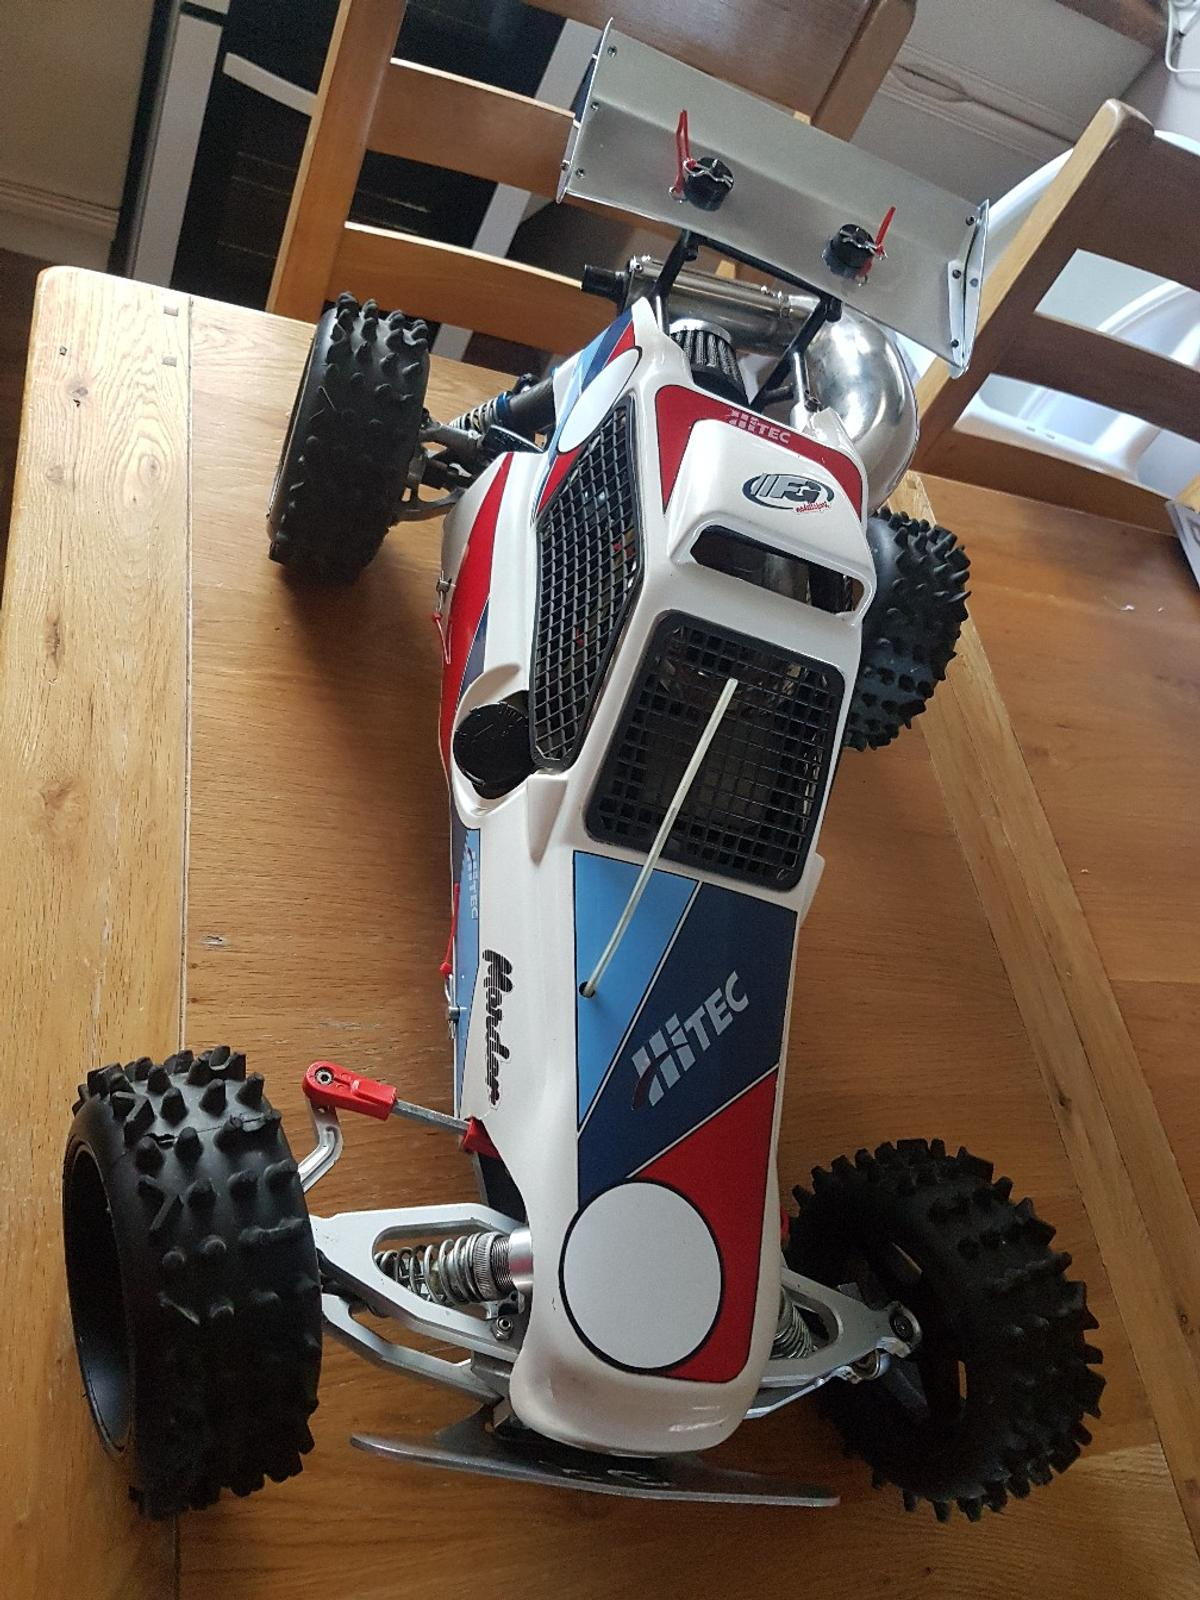 Fg marder 1/5th scale rc car in Wakefield for £700 00 for